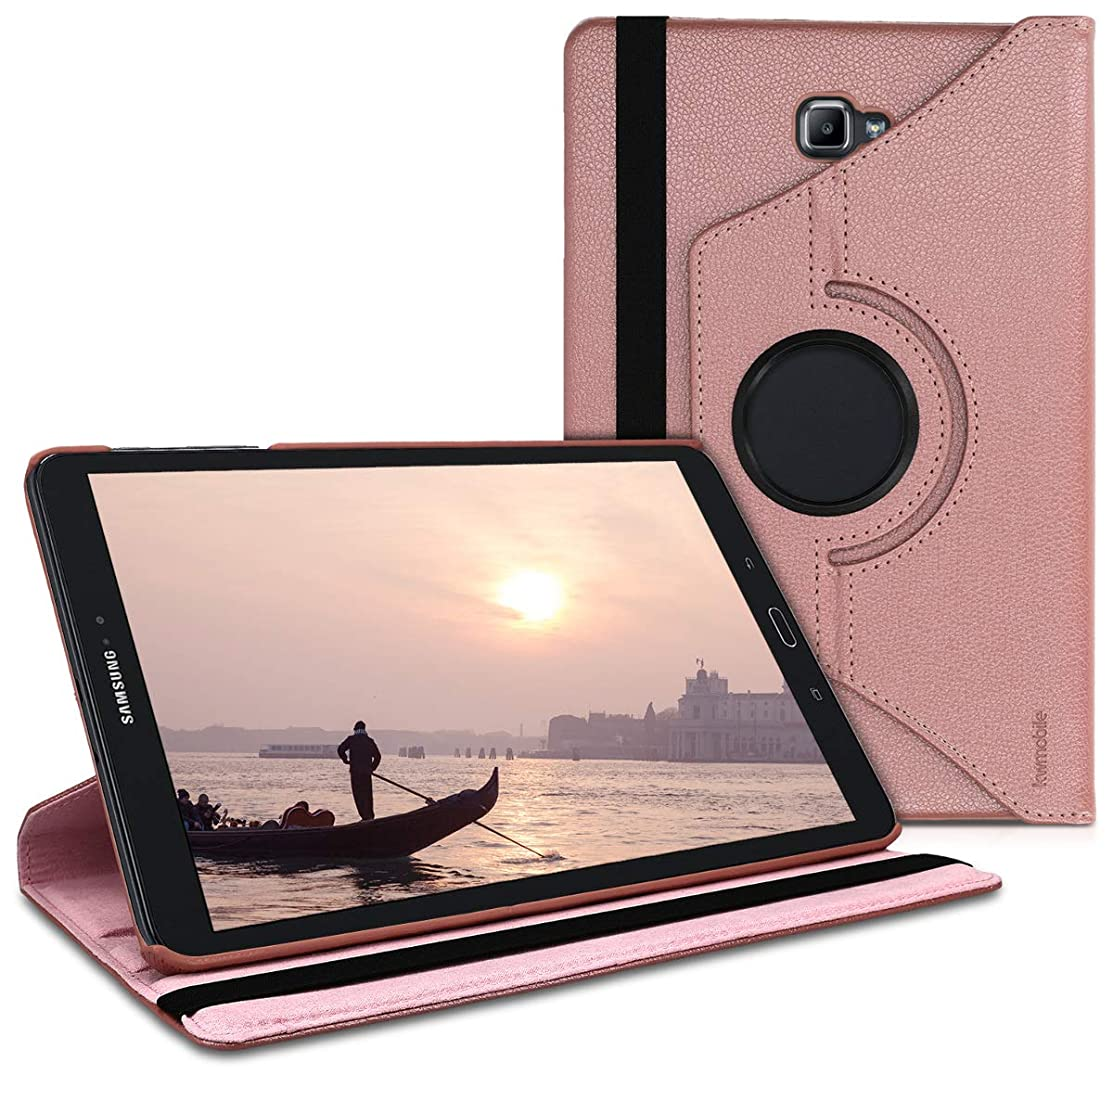 kwmobile 360° Case for Samsung Galaxy Tab A 10.1 (S-Pen) - PU Leather Protective Tablet Cover with Stand Function - Rose Gold